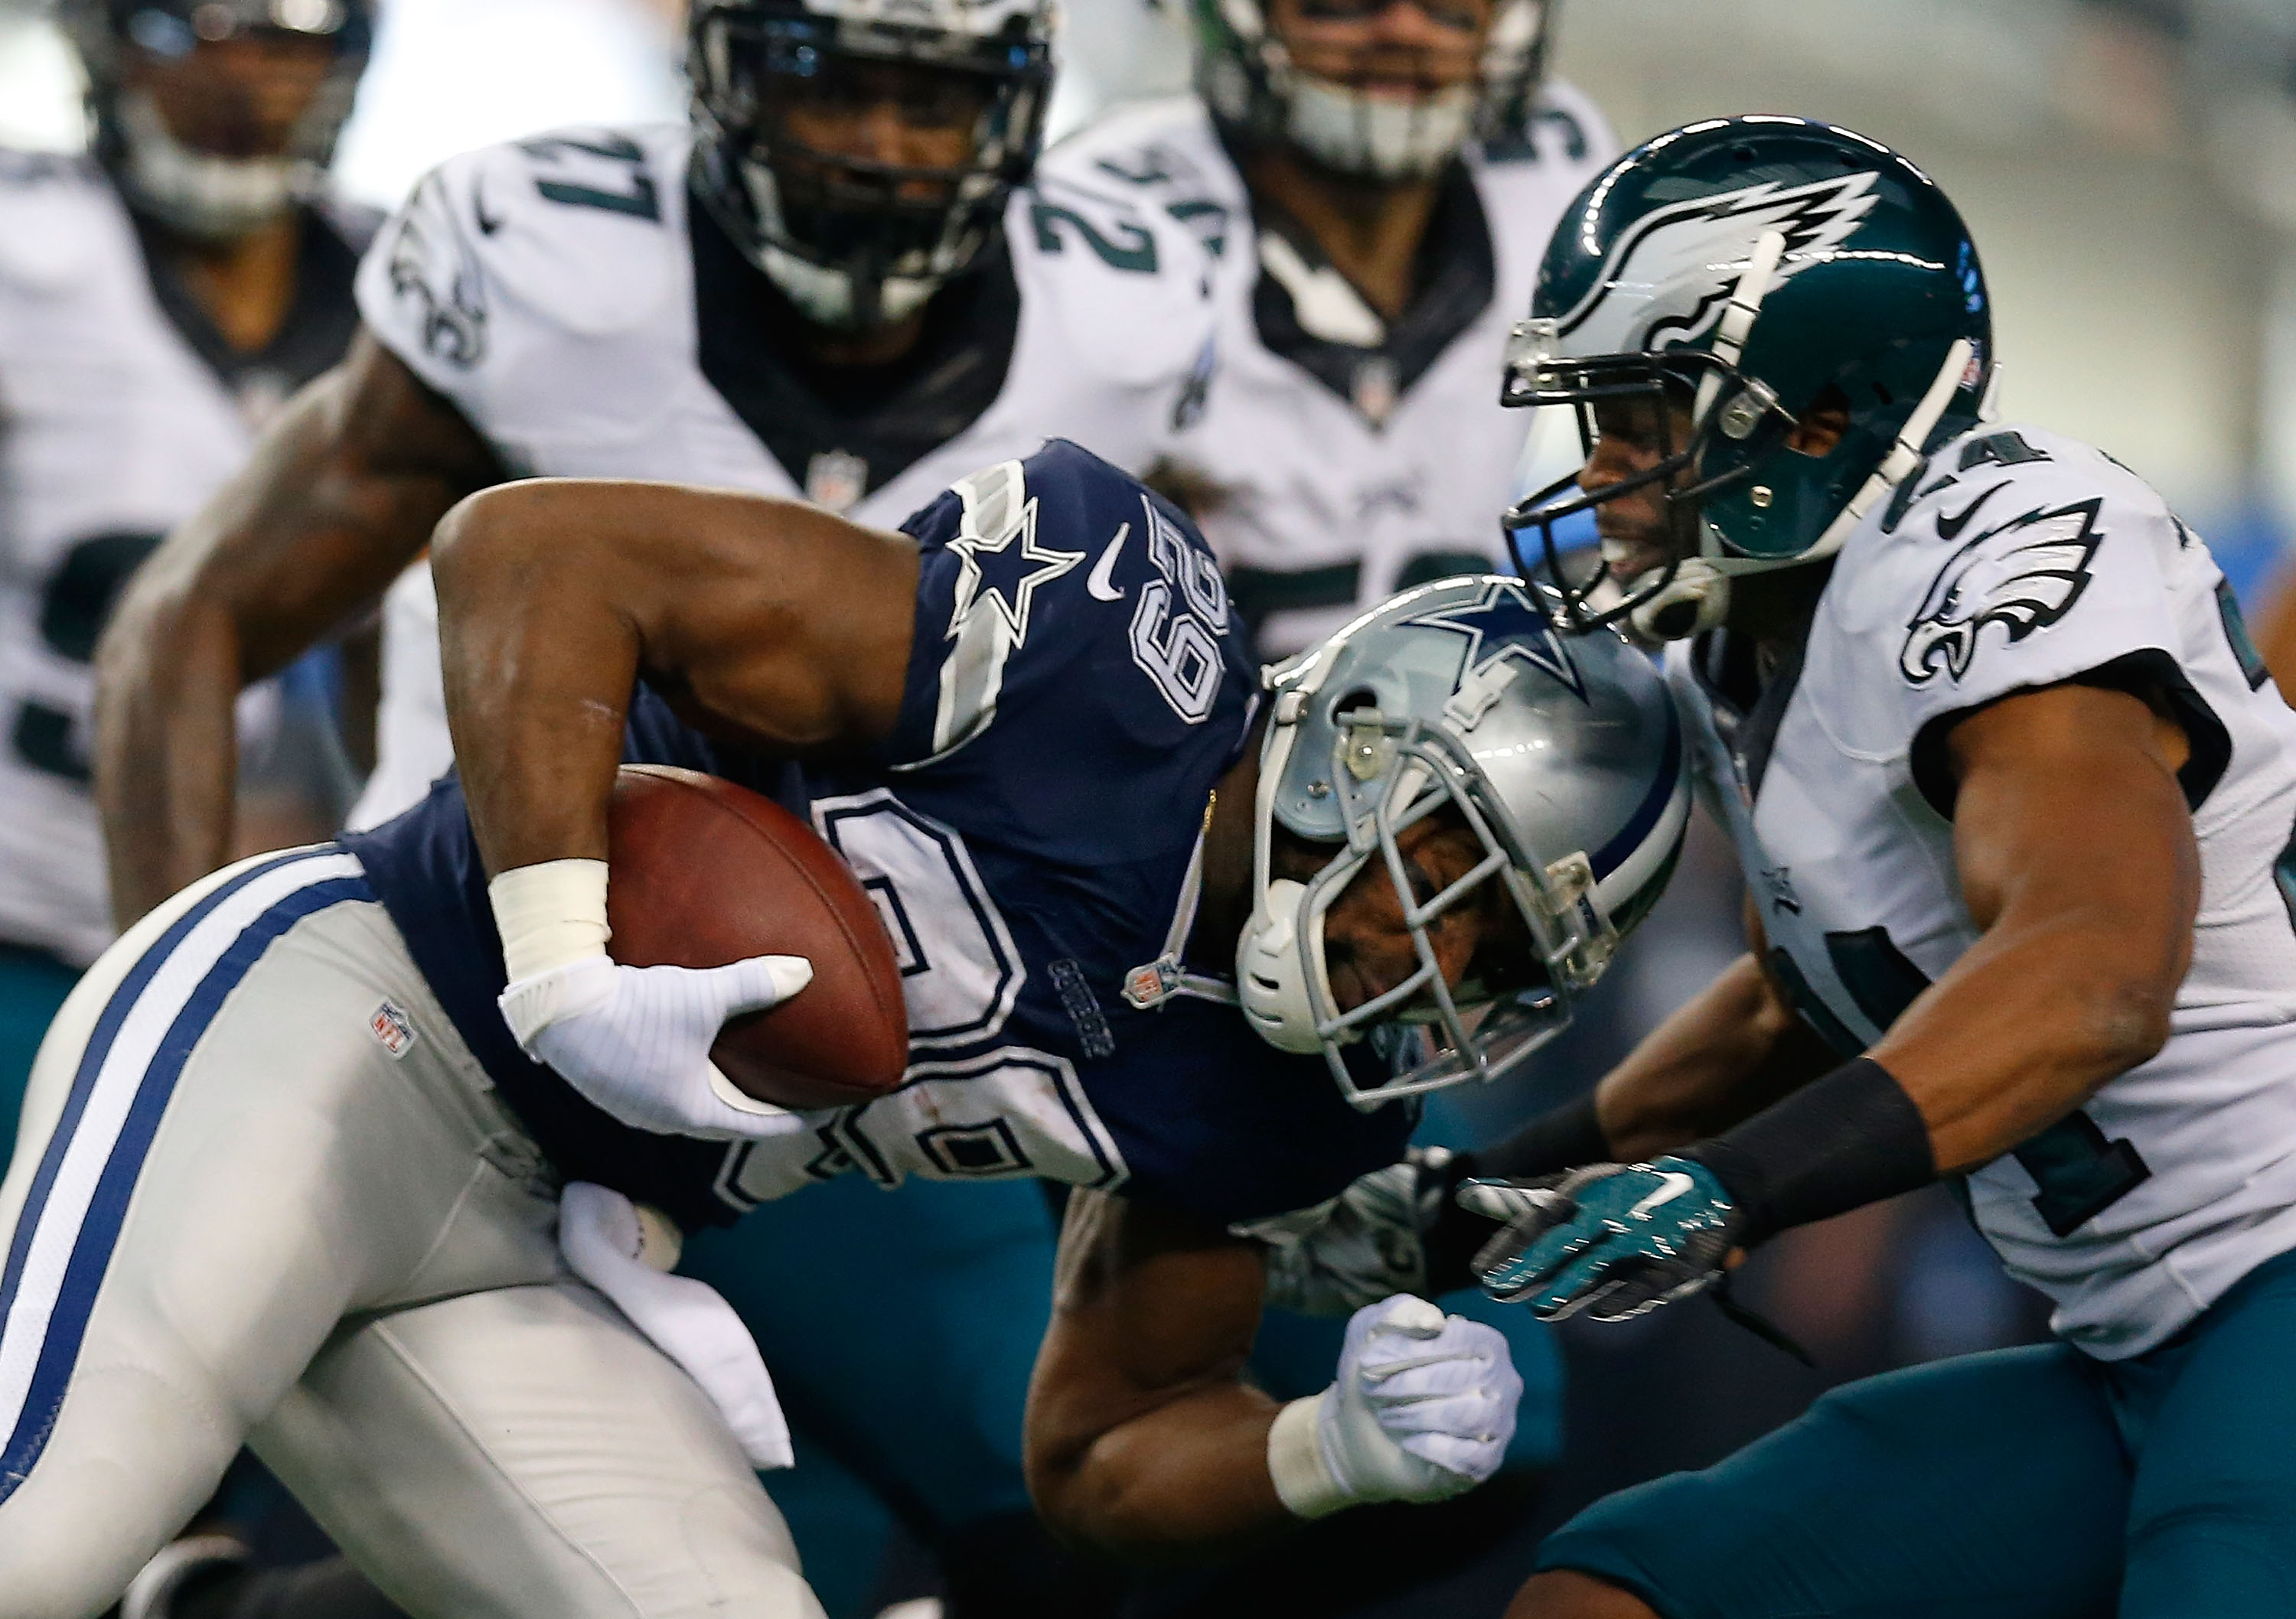 A bunch of storylines surround the Philly-Dallas matchup on MNF